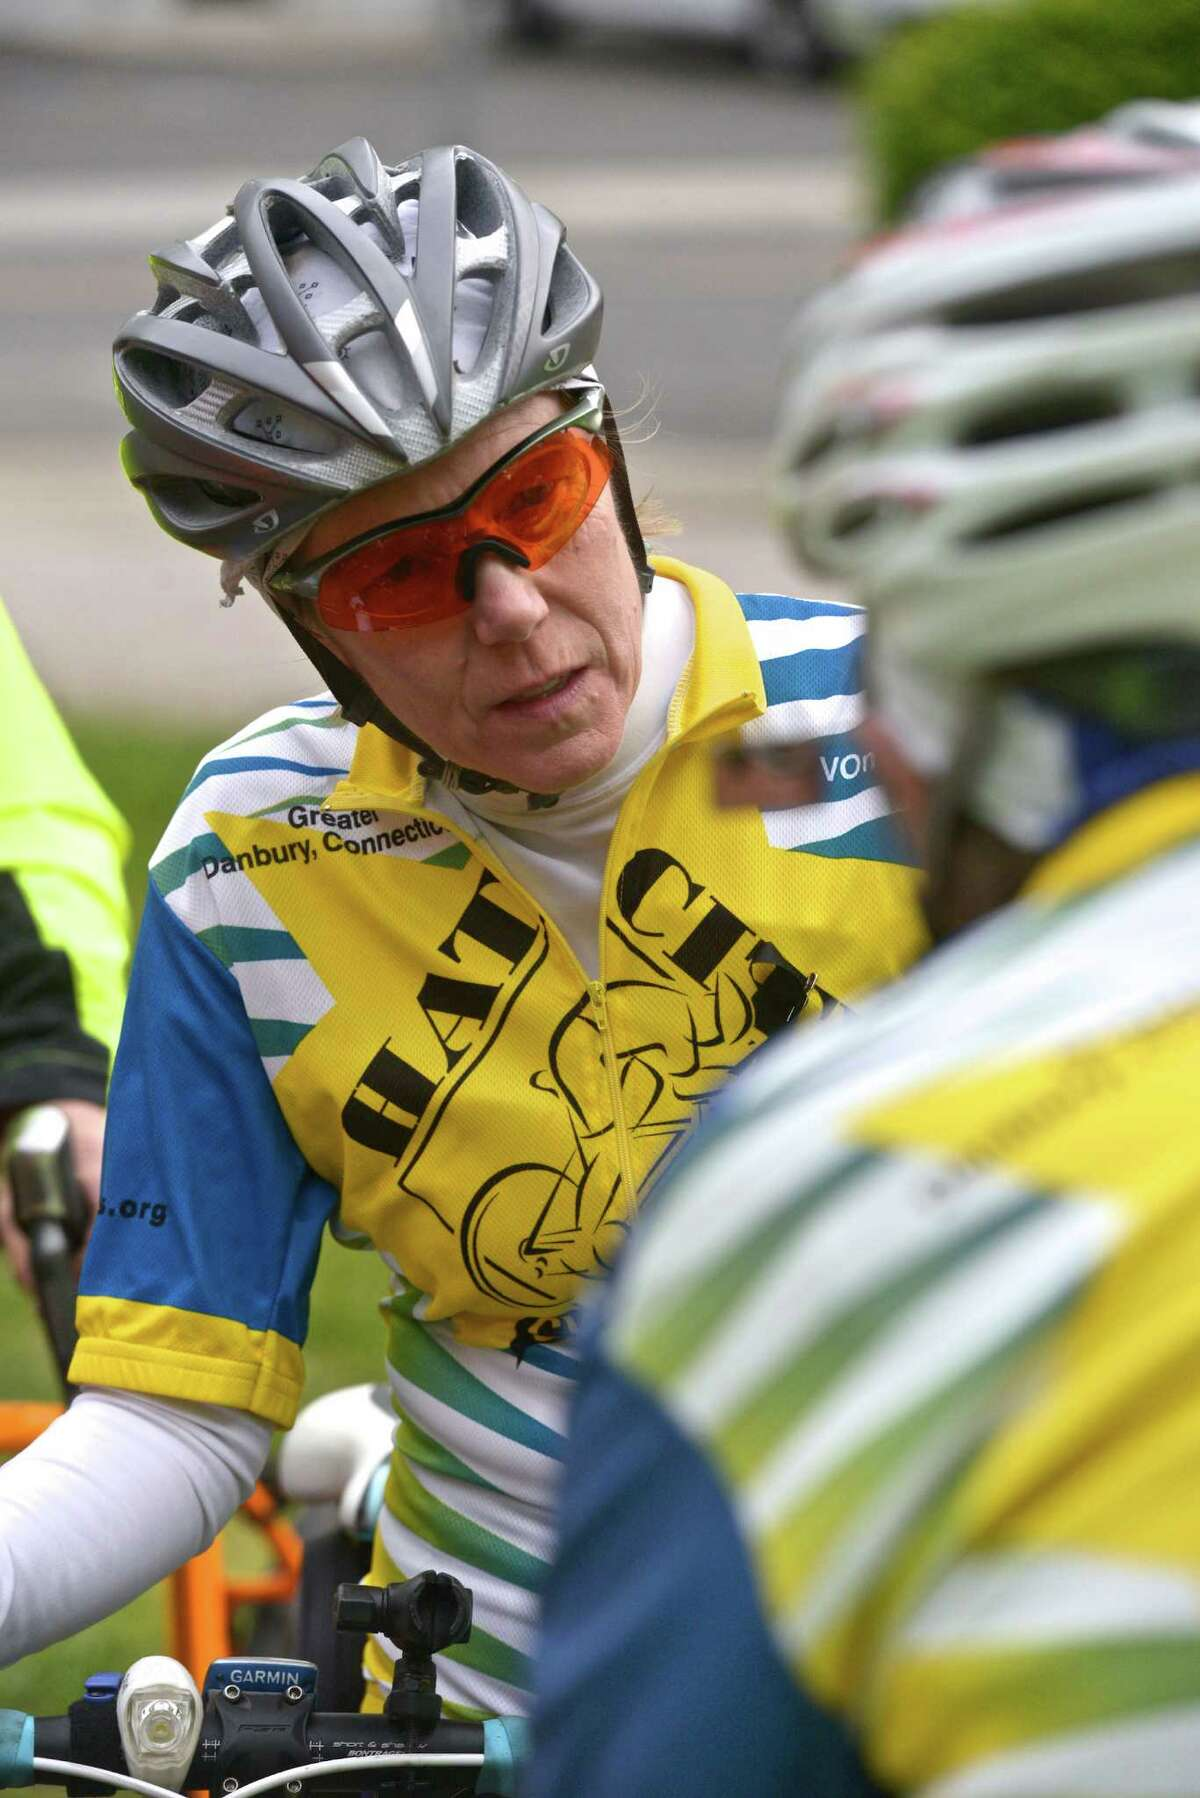 Leslie Bardelli, of New Milford,, talks with other riders as they wait at the Danbury Green, to participate in the Ride of Silence, a national event to raise awareness of sharing the road with cyclist, and honor cyclist who have been killed or injured. On Wednesday evening, May 20, 2015, in Danbury, Conn.